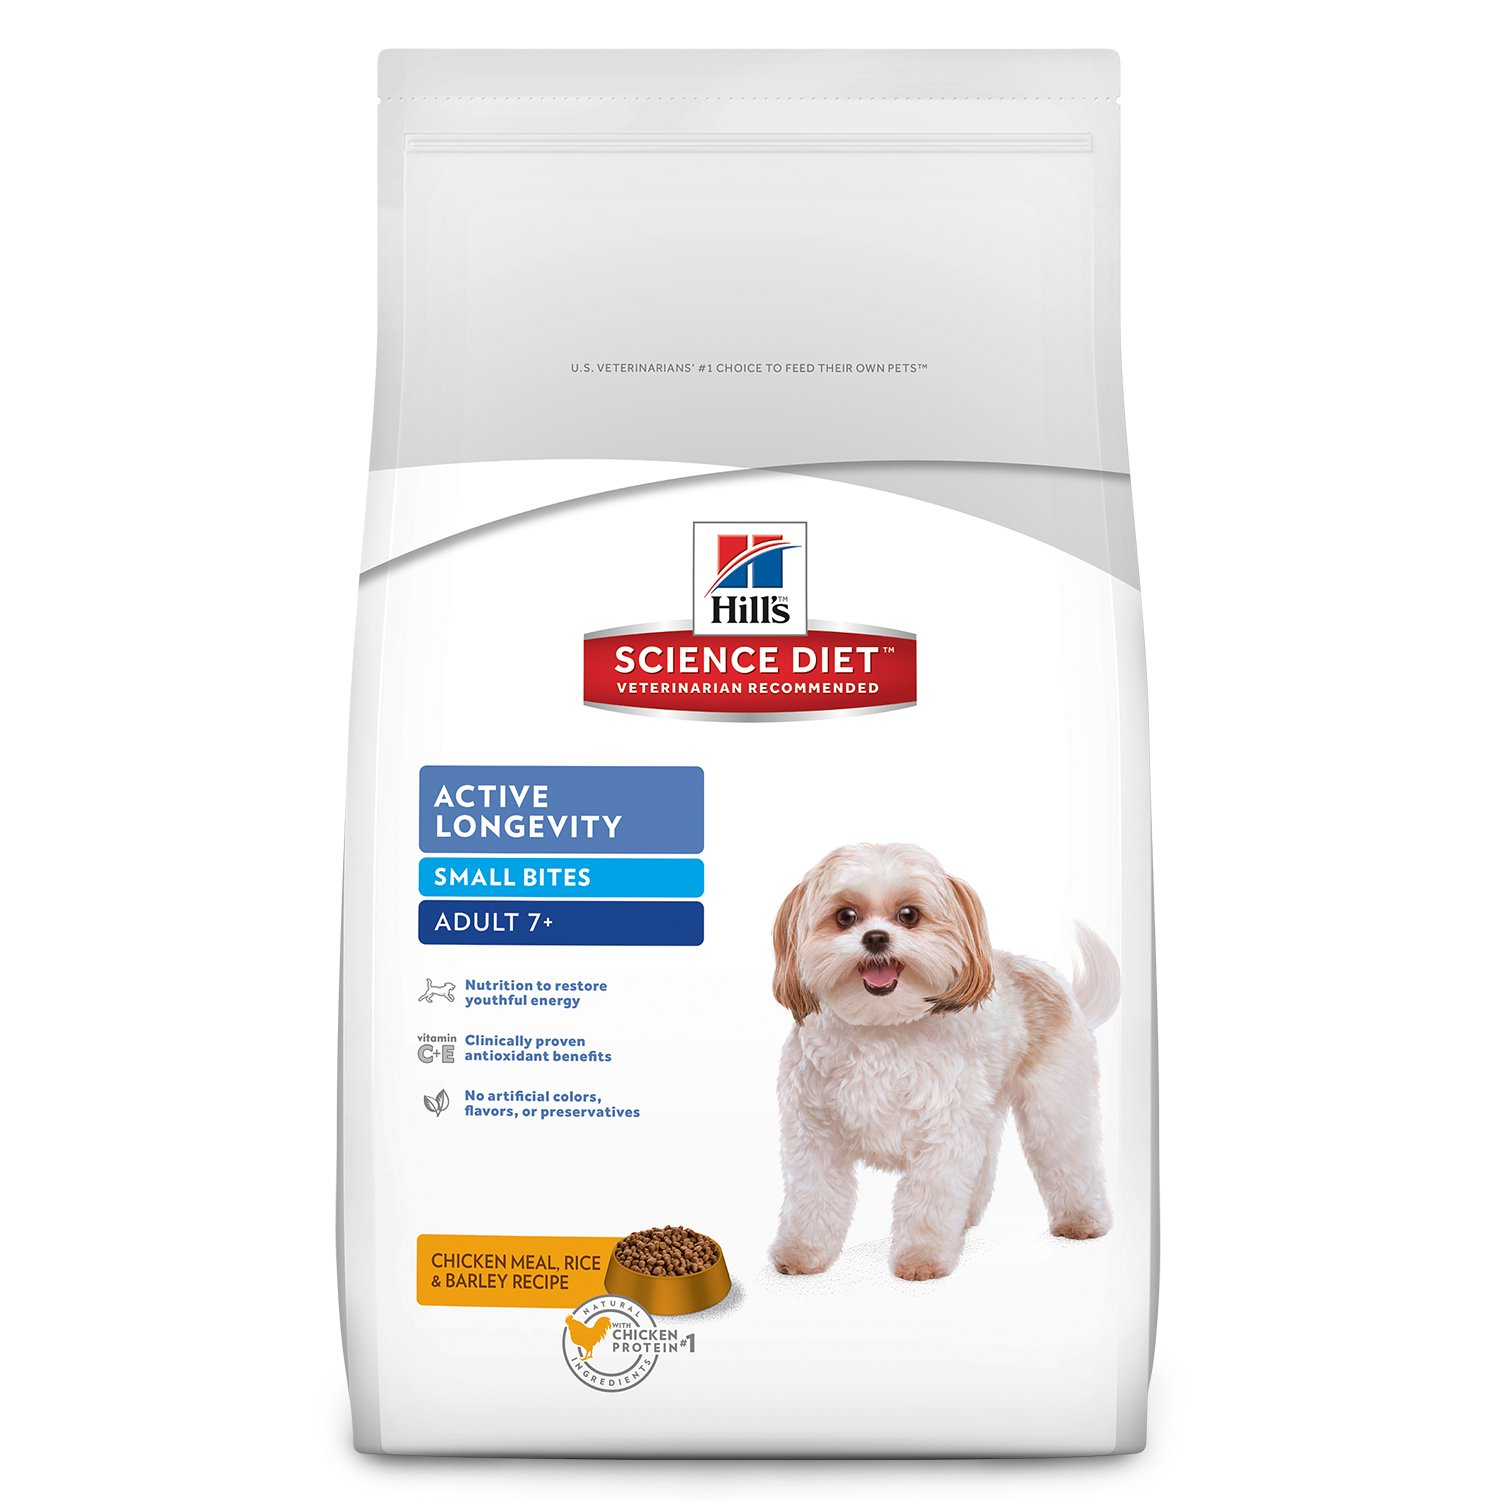 Hill's Science Diet Senior Dog Food, Adult 7+ Active Longevity Small Bites Chicken Meal Rice & Barley Recipe Dry Dog Food, 33 lb Bag